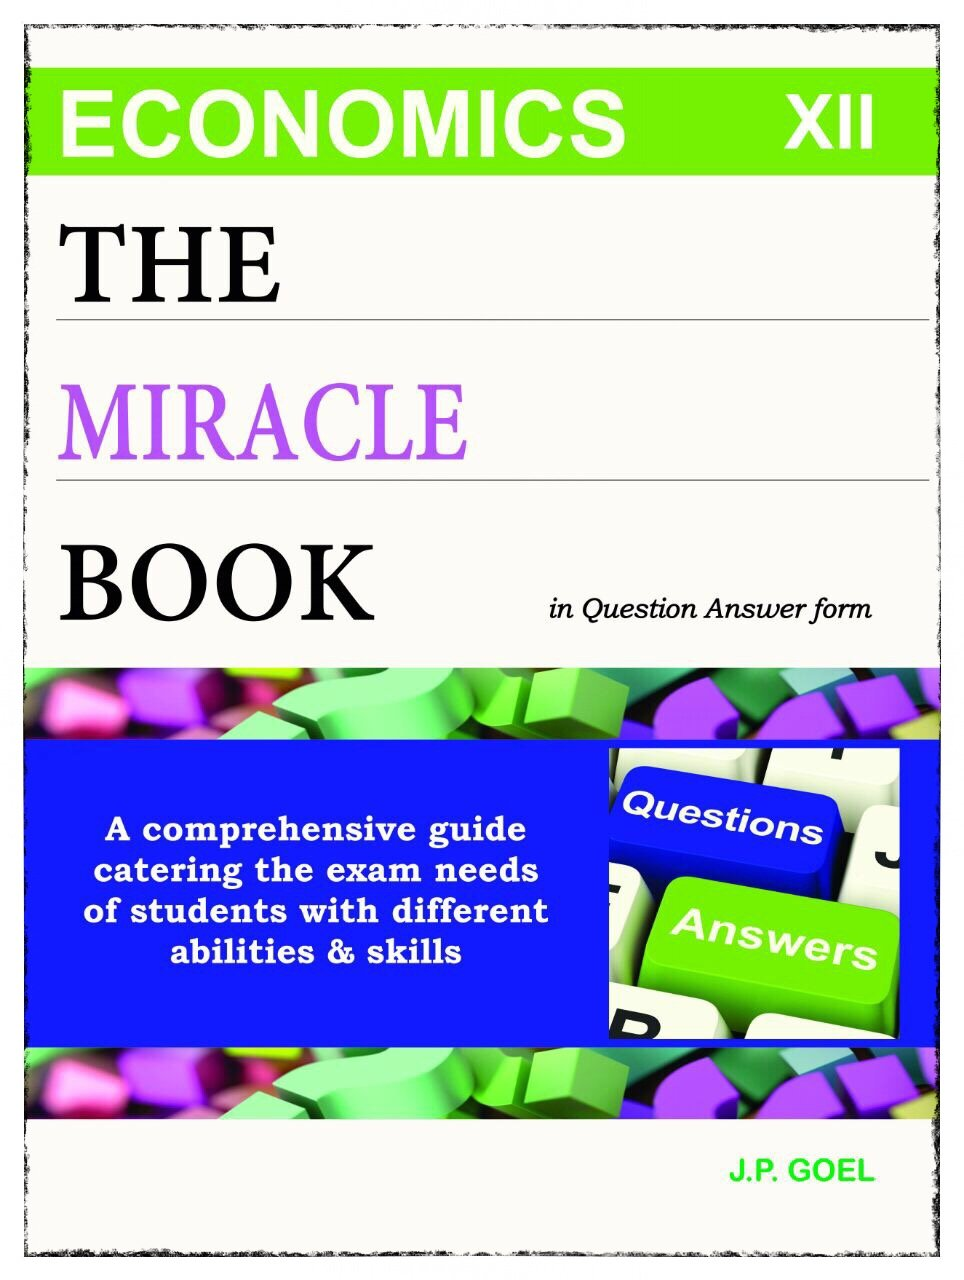 Buy THE MIRACLE BOOK of Economics, Class XII Book Online at